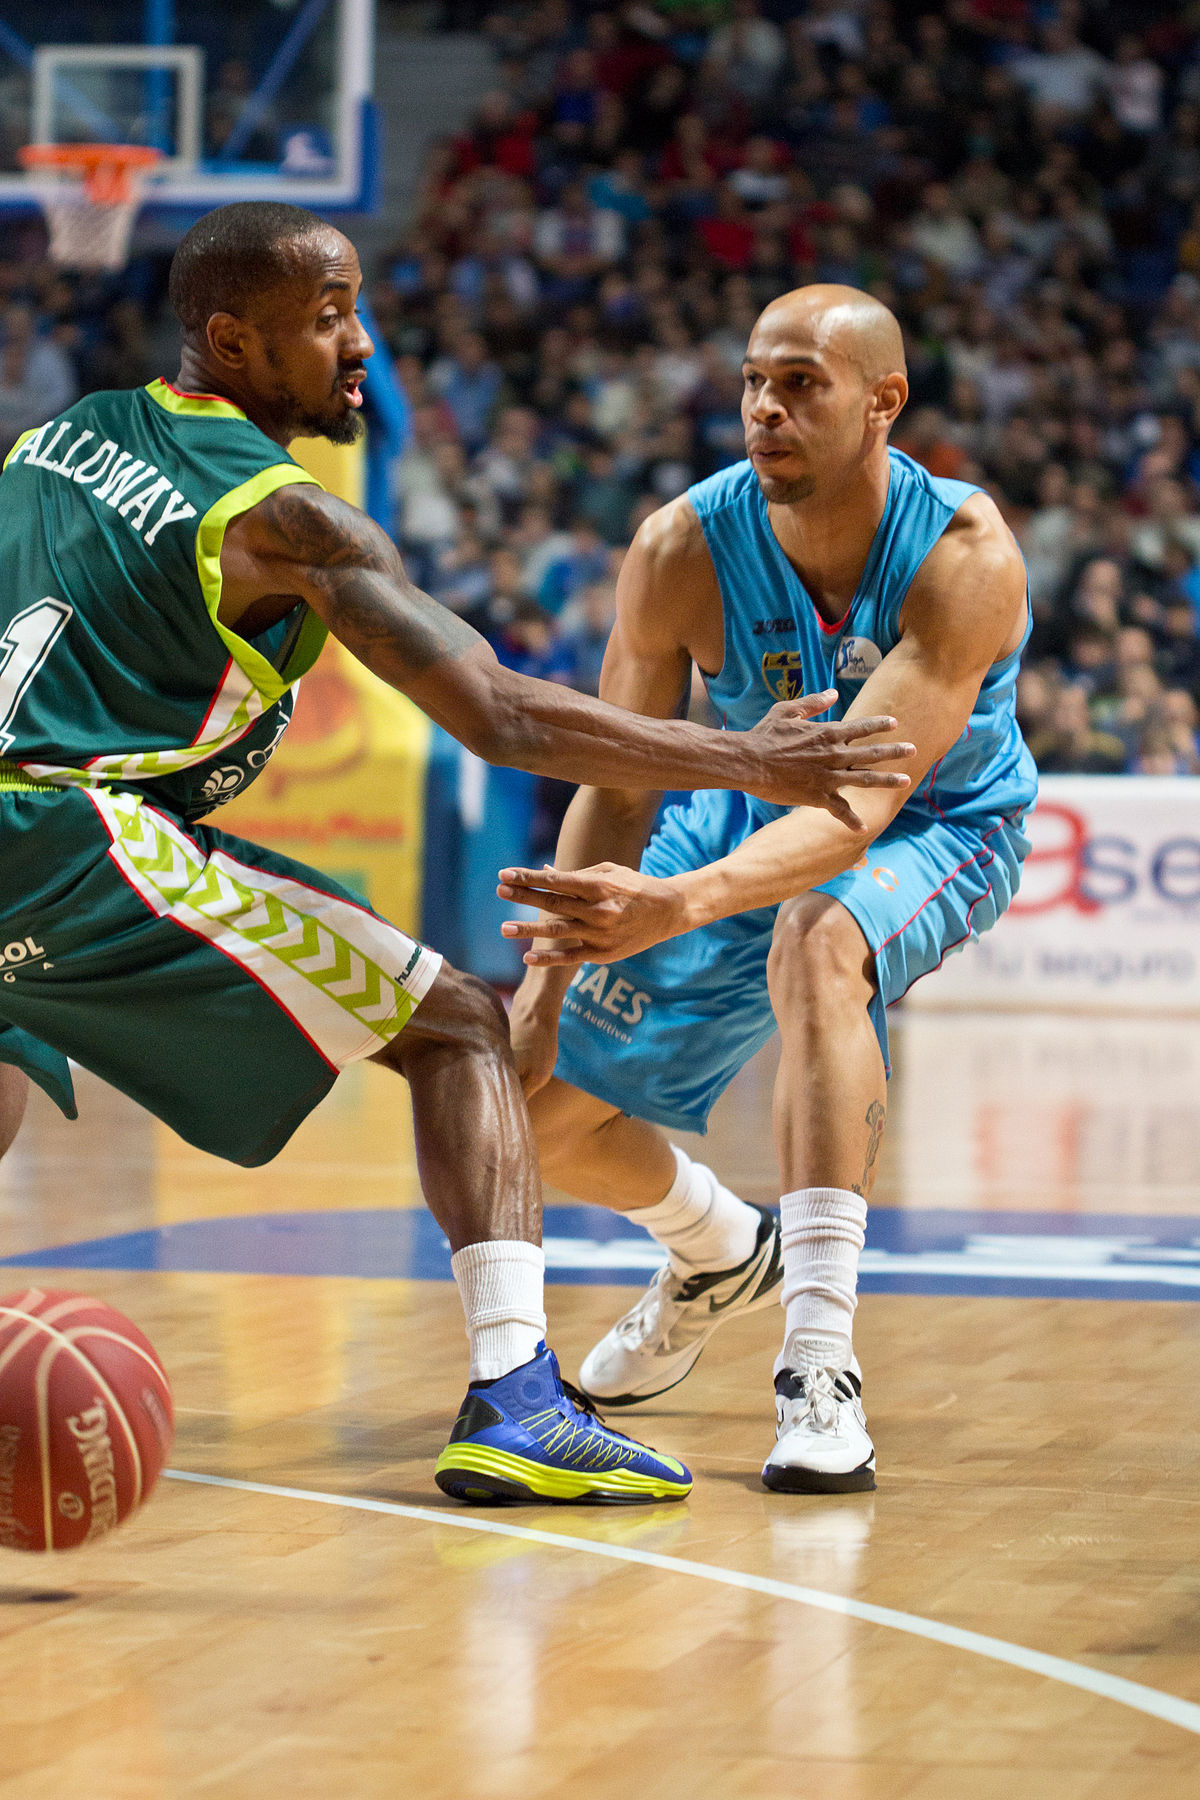 Image Result For Basketball Player Color